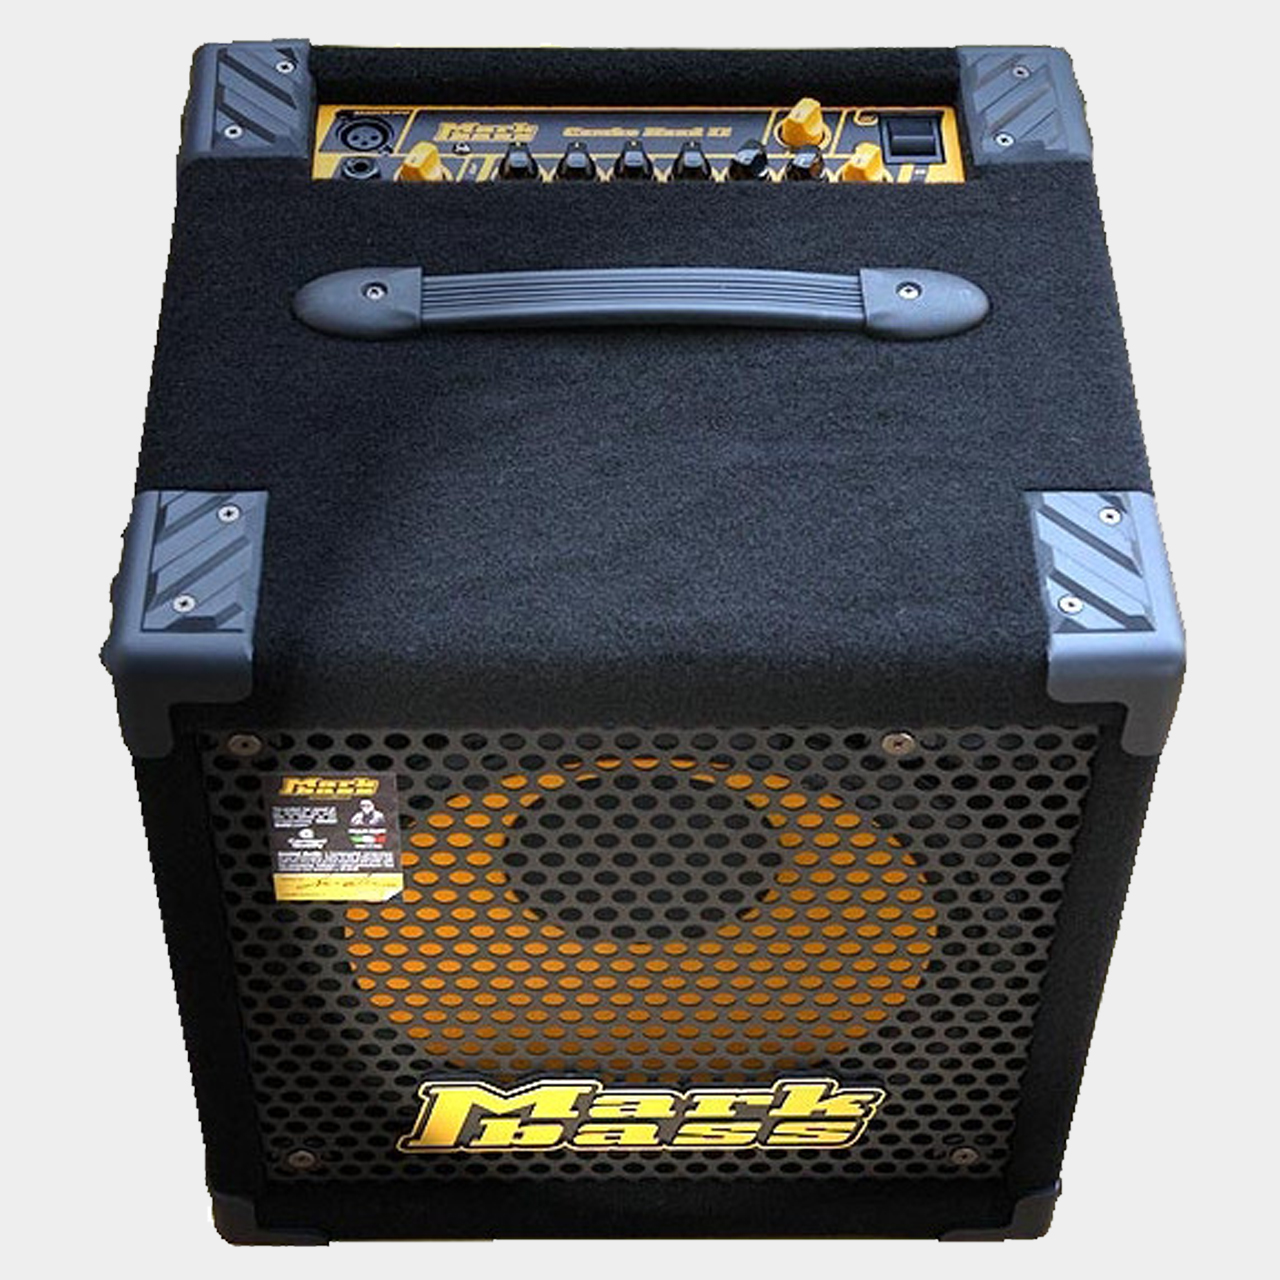 MARKBASS Mini CMD 121P LM3 Combo